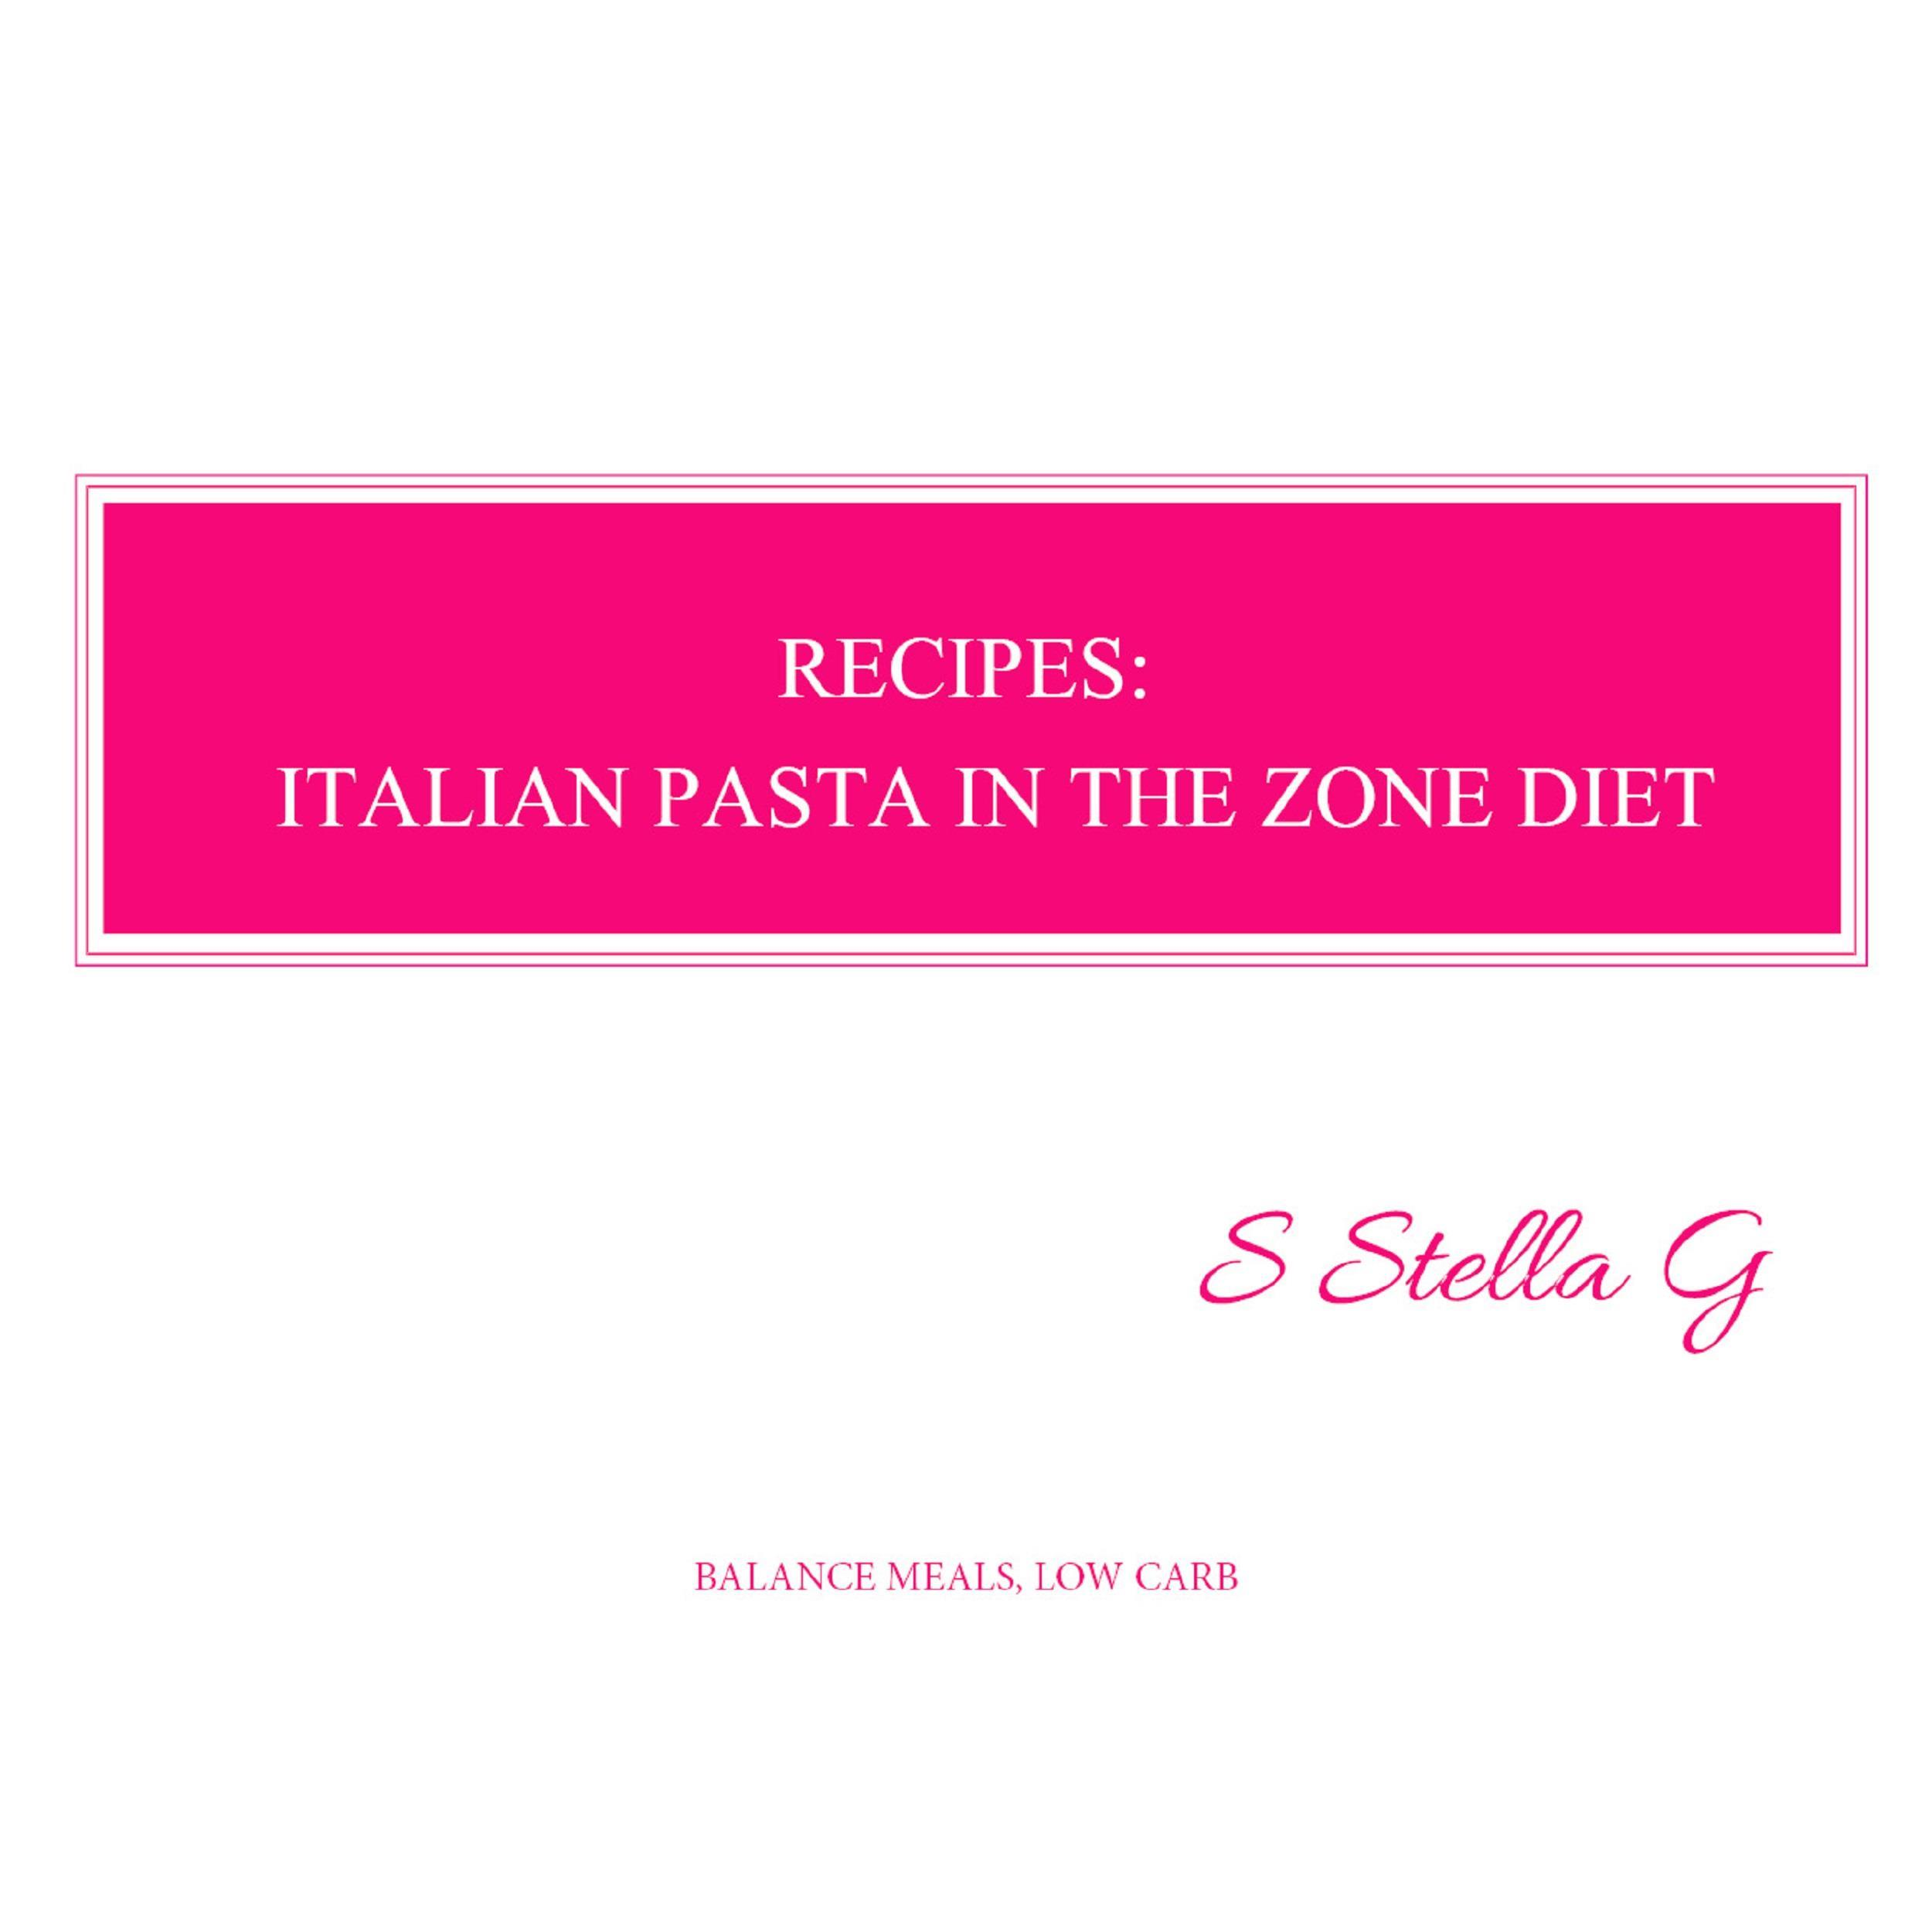 Recipes: italian pasta in the zone diet. Balance meals, low carb